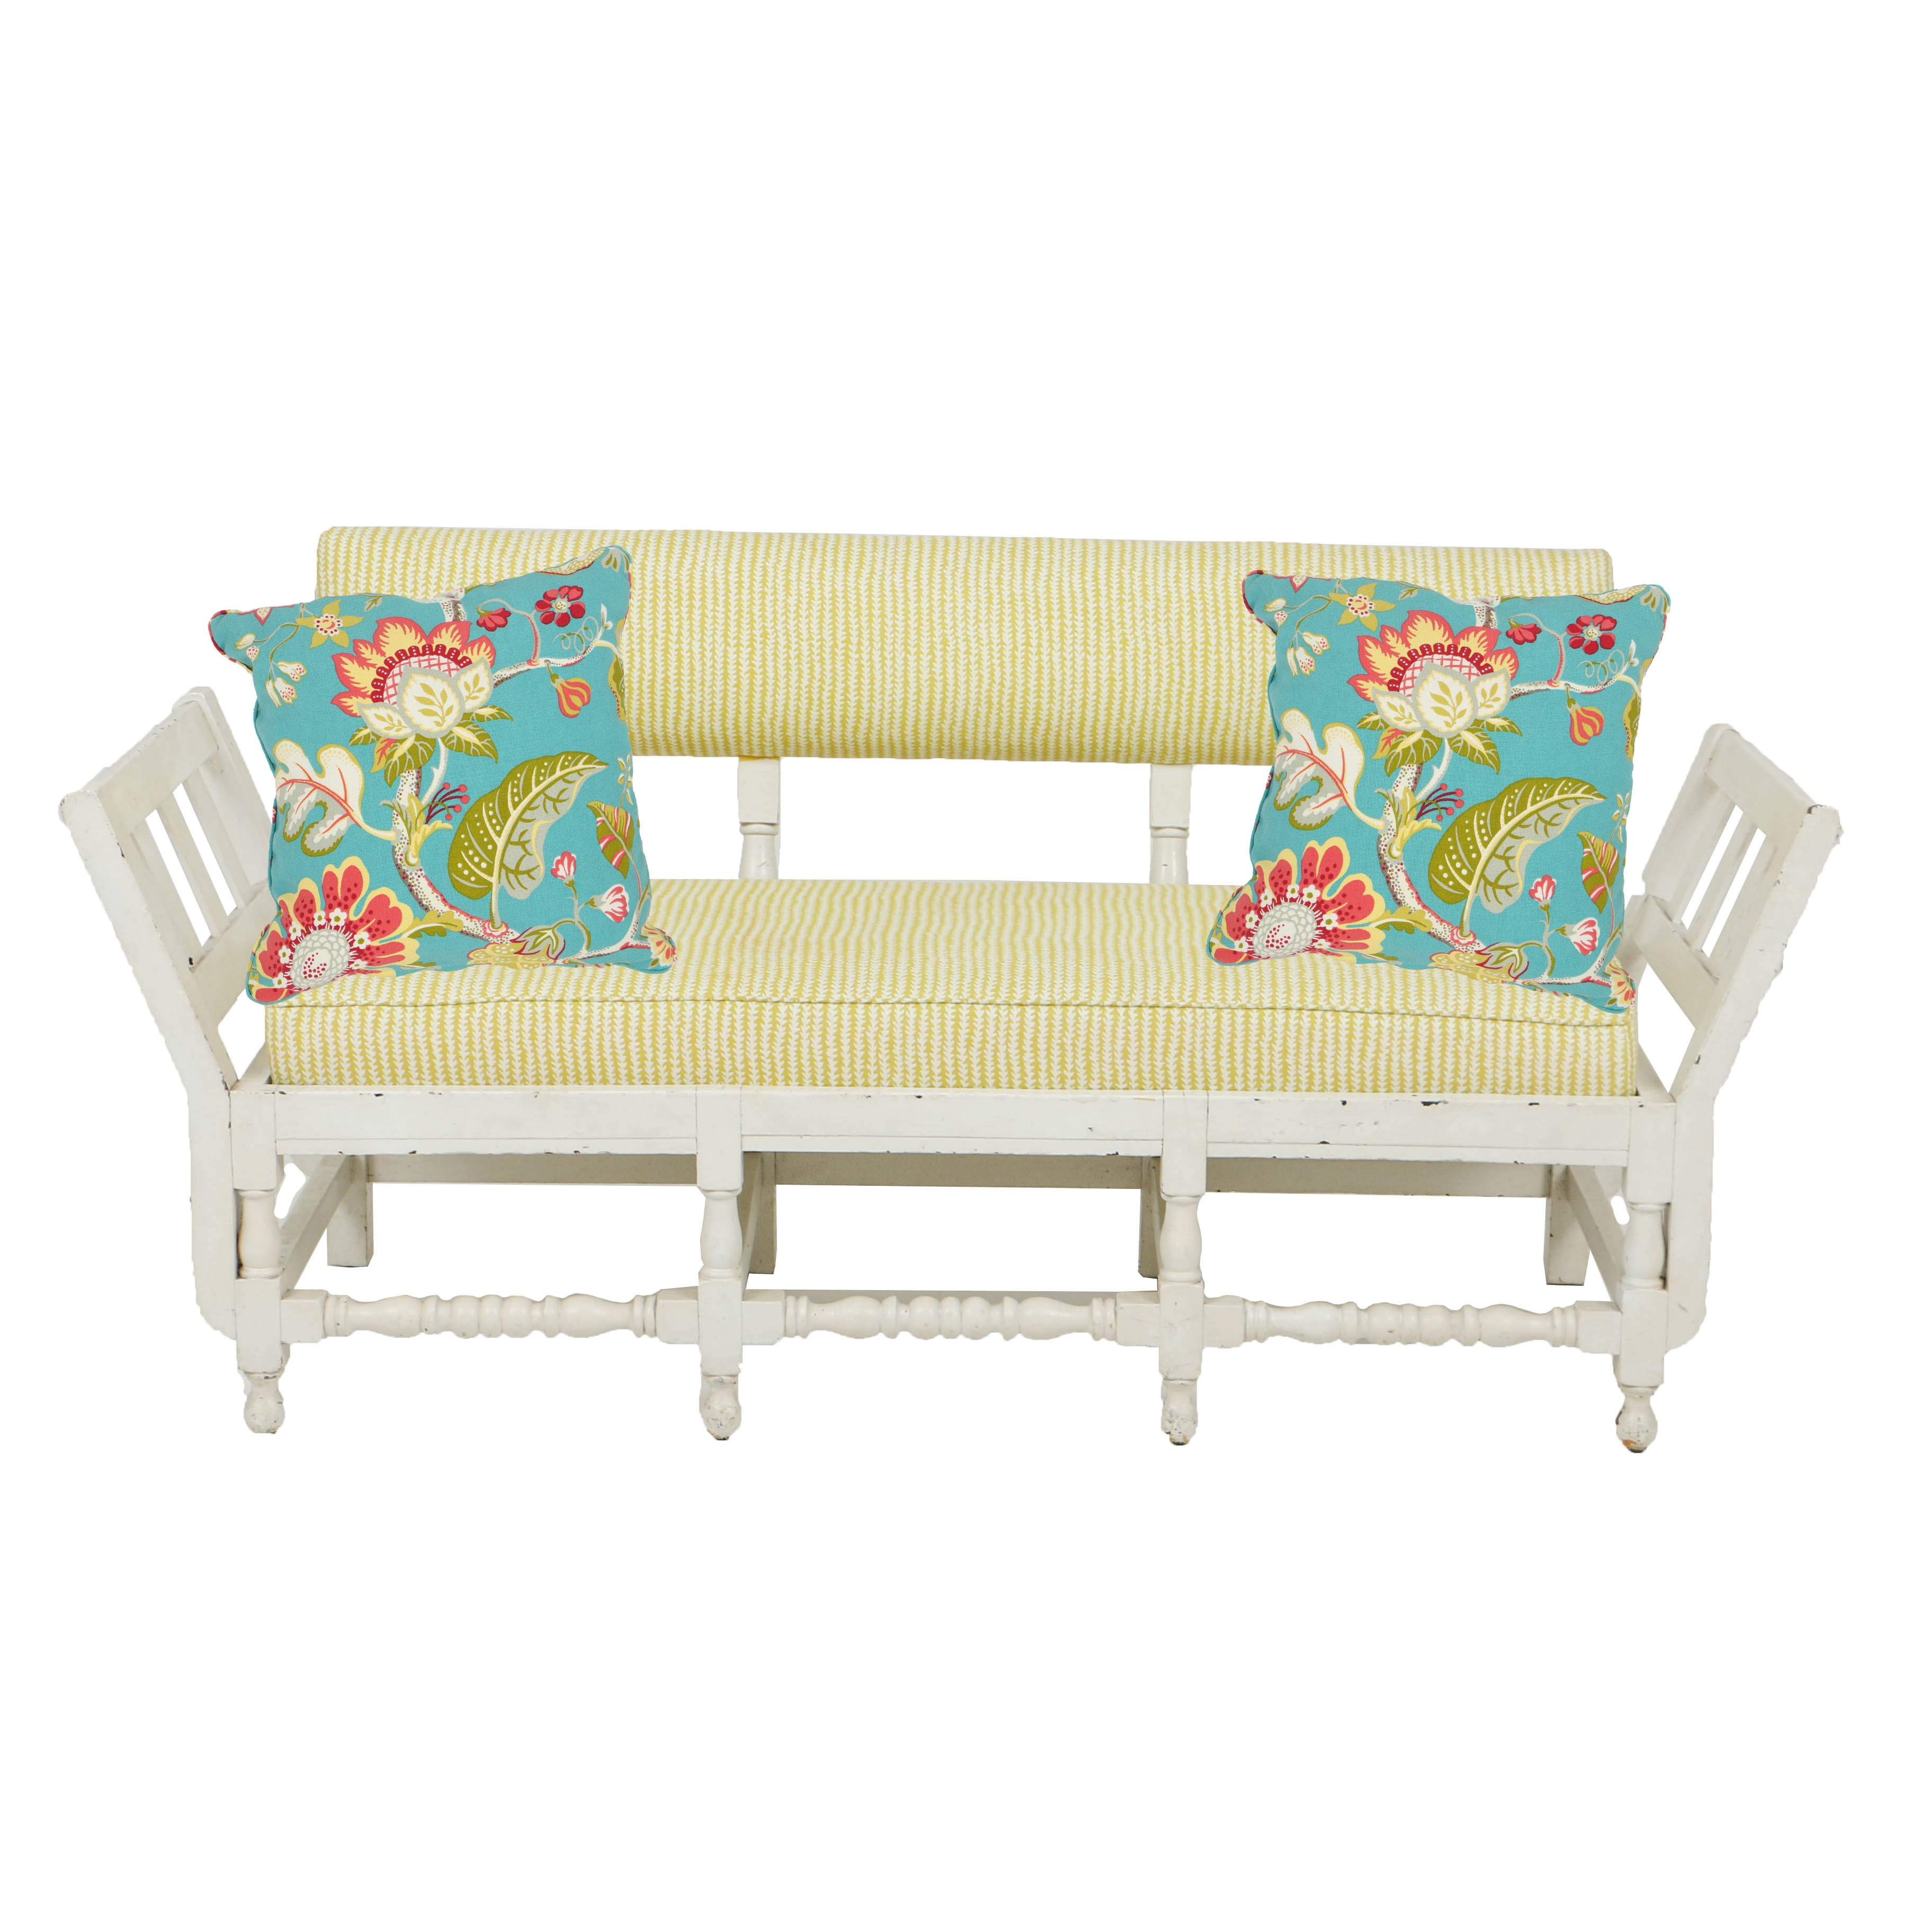 Vintage White-Painted Settee in Custom Upholstery With Floral Accent Pillows